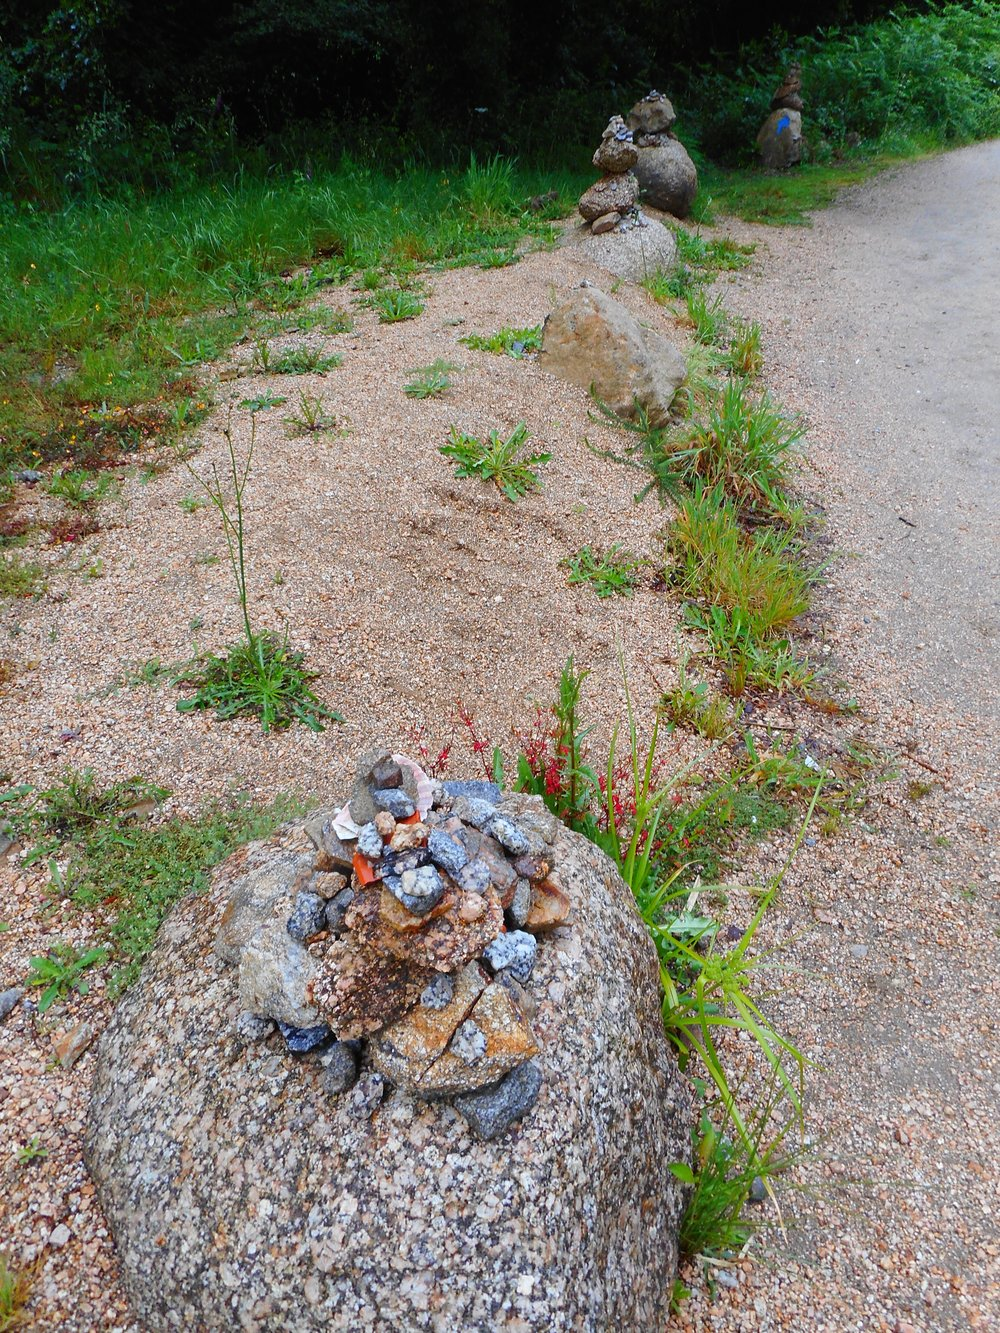 Beautiful little piles of rocks and shells marked the paths we took